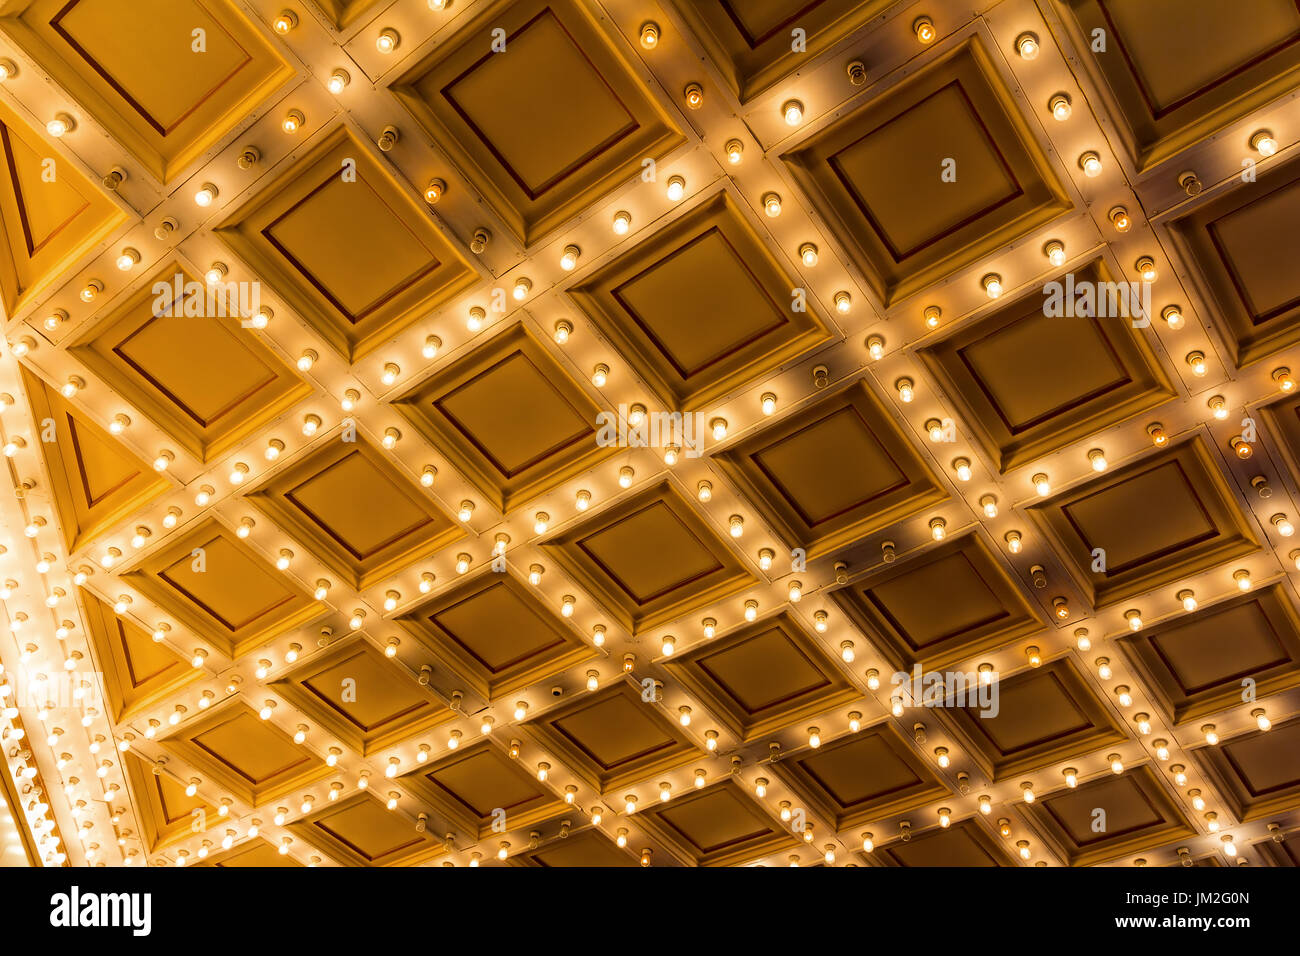 Marquee lights on broadway theater art deco ceiling stock photo marquee lights on broadway theater art deco ceiling aloadofball Image collections